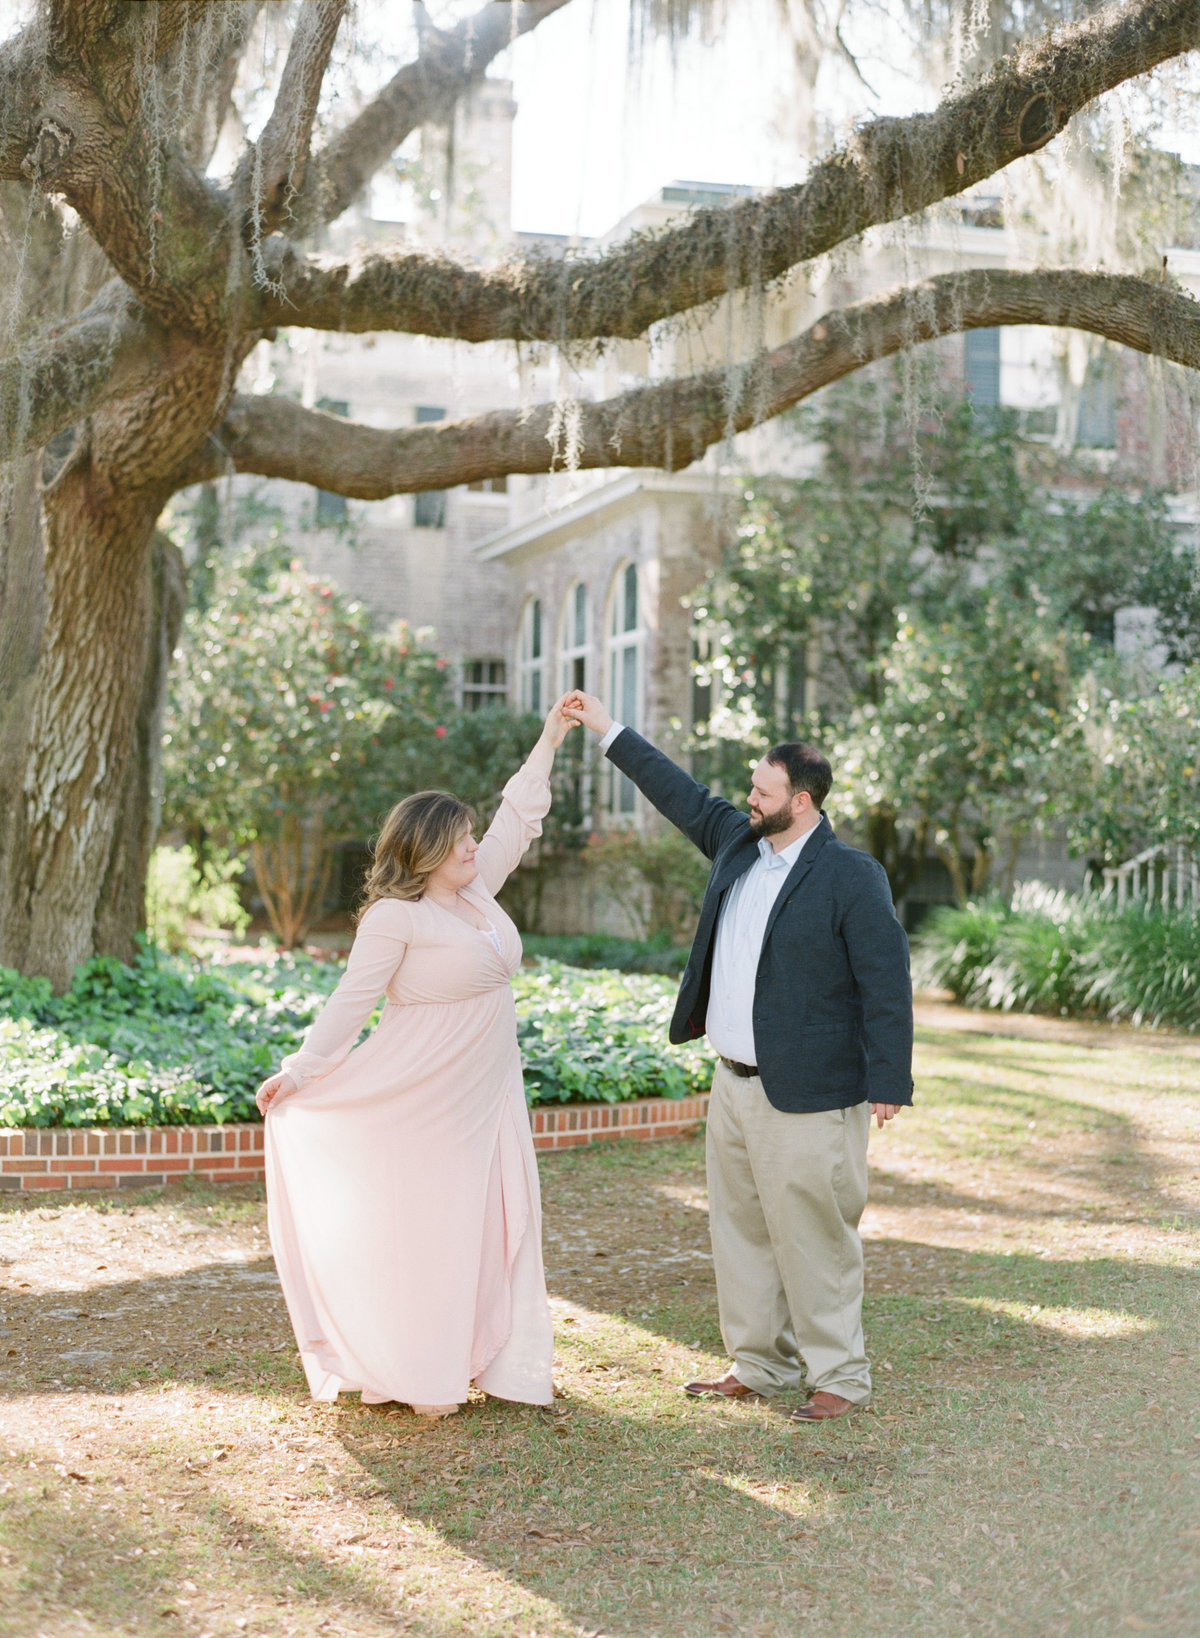 CourtneyWoodhamPhoto-129